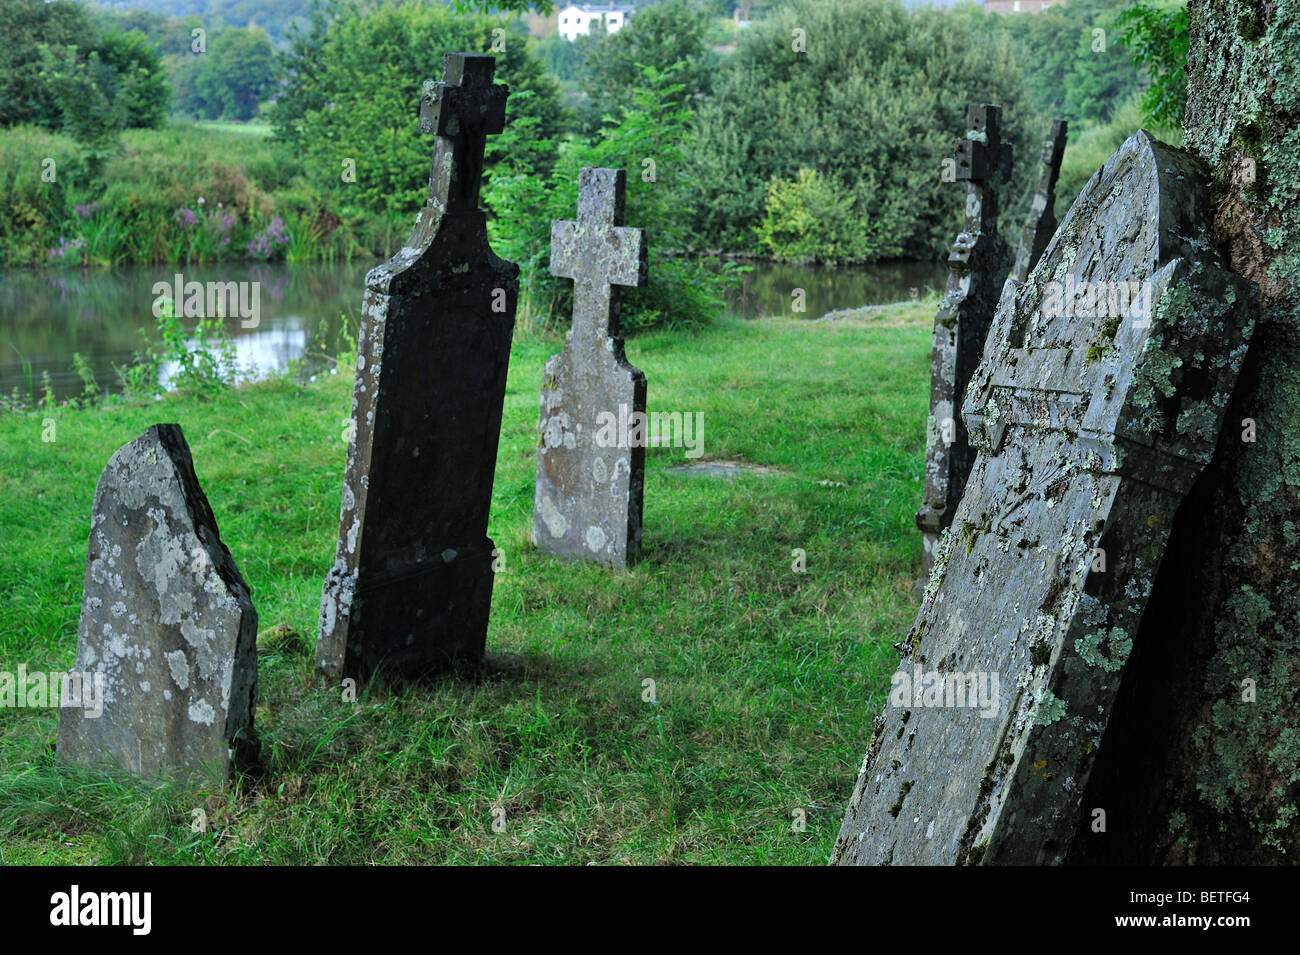 Headstones on graves of the old graveyard along the Semois river at Mortehan, Luxembourg, Wallonia, Belgian Ardennes, - Stock Image